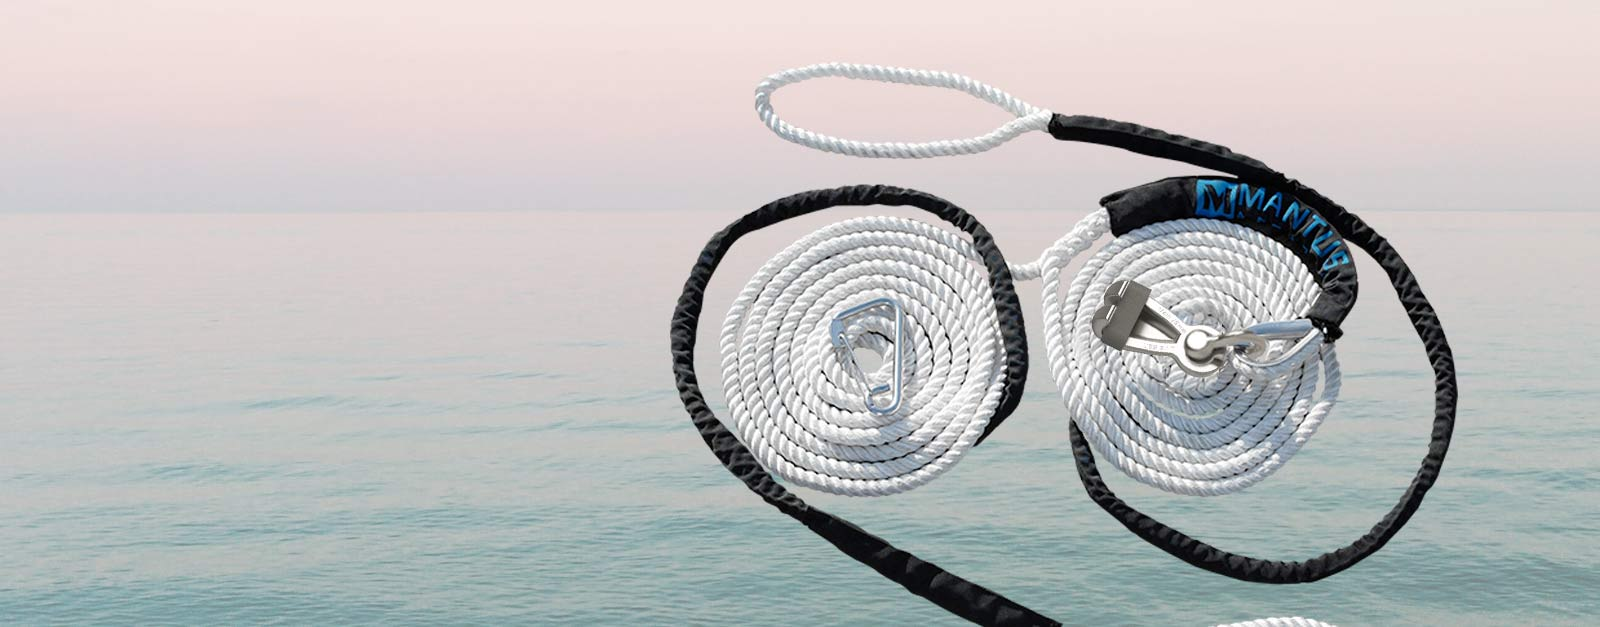 Mantus Monohull Monohull Bridle with M2 Chain Hook